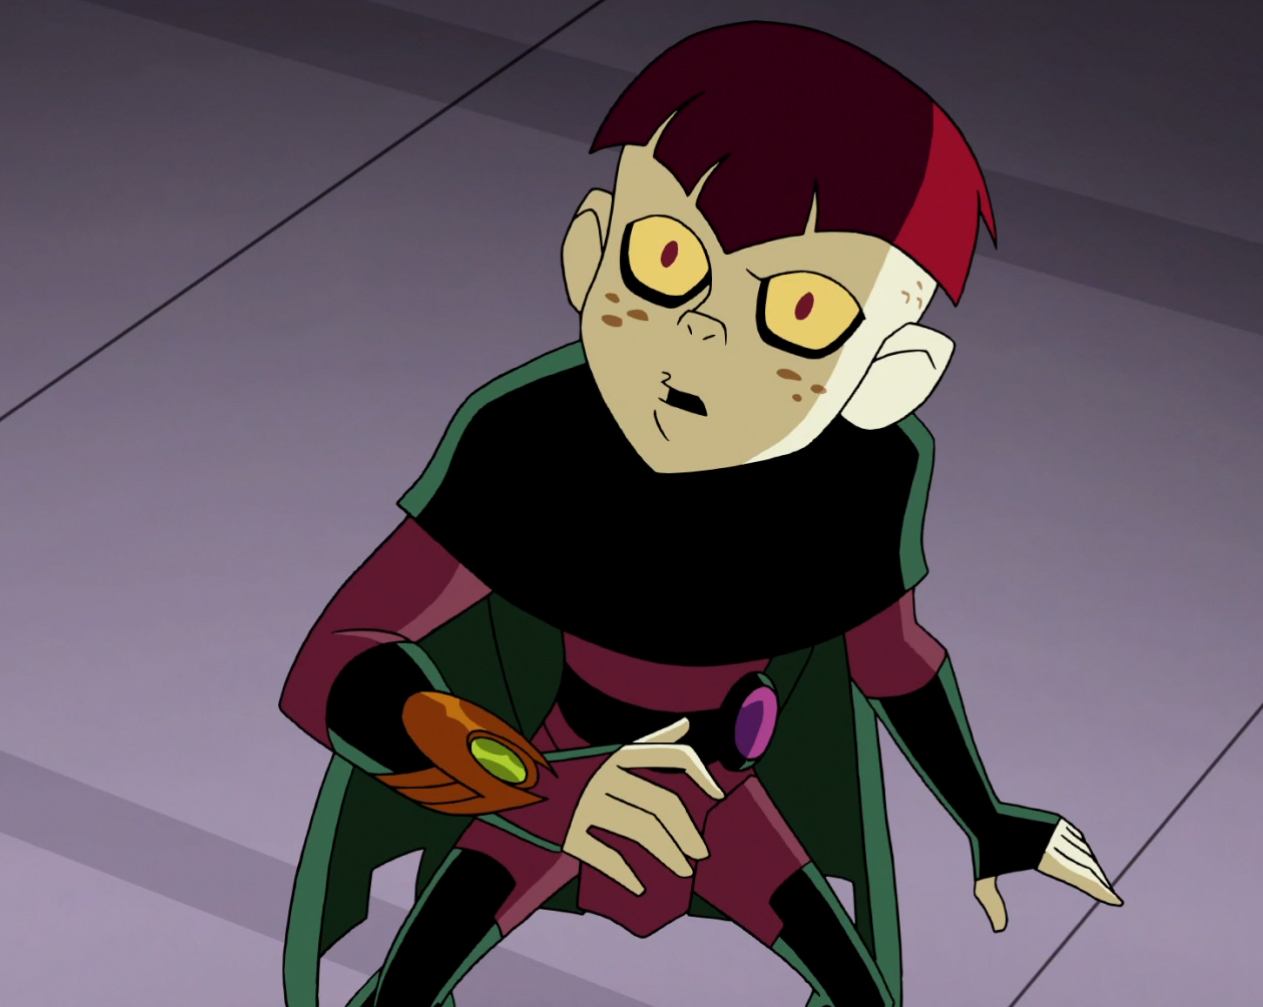 Zyx (Legion of Super-Heroes TV Series)